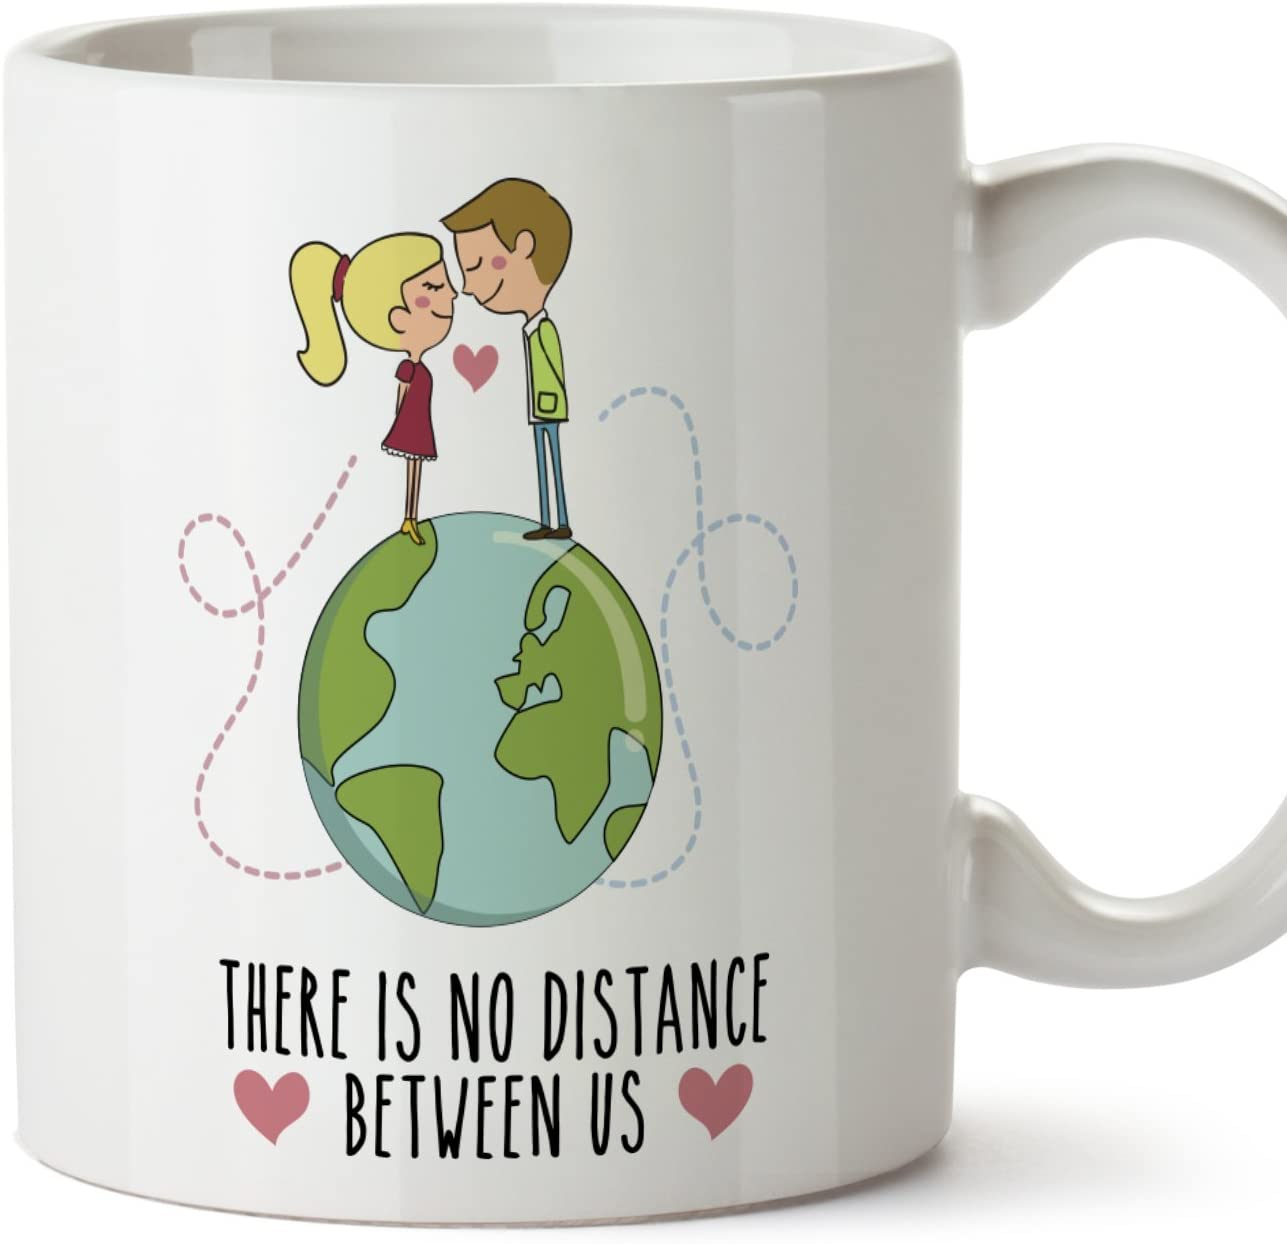 MUGFFINS Taza de café Regalo para la Pareja de Enamorados - Regalo Original de Novios y Novias San Valentín - There is no Distance Between us - 350